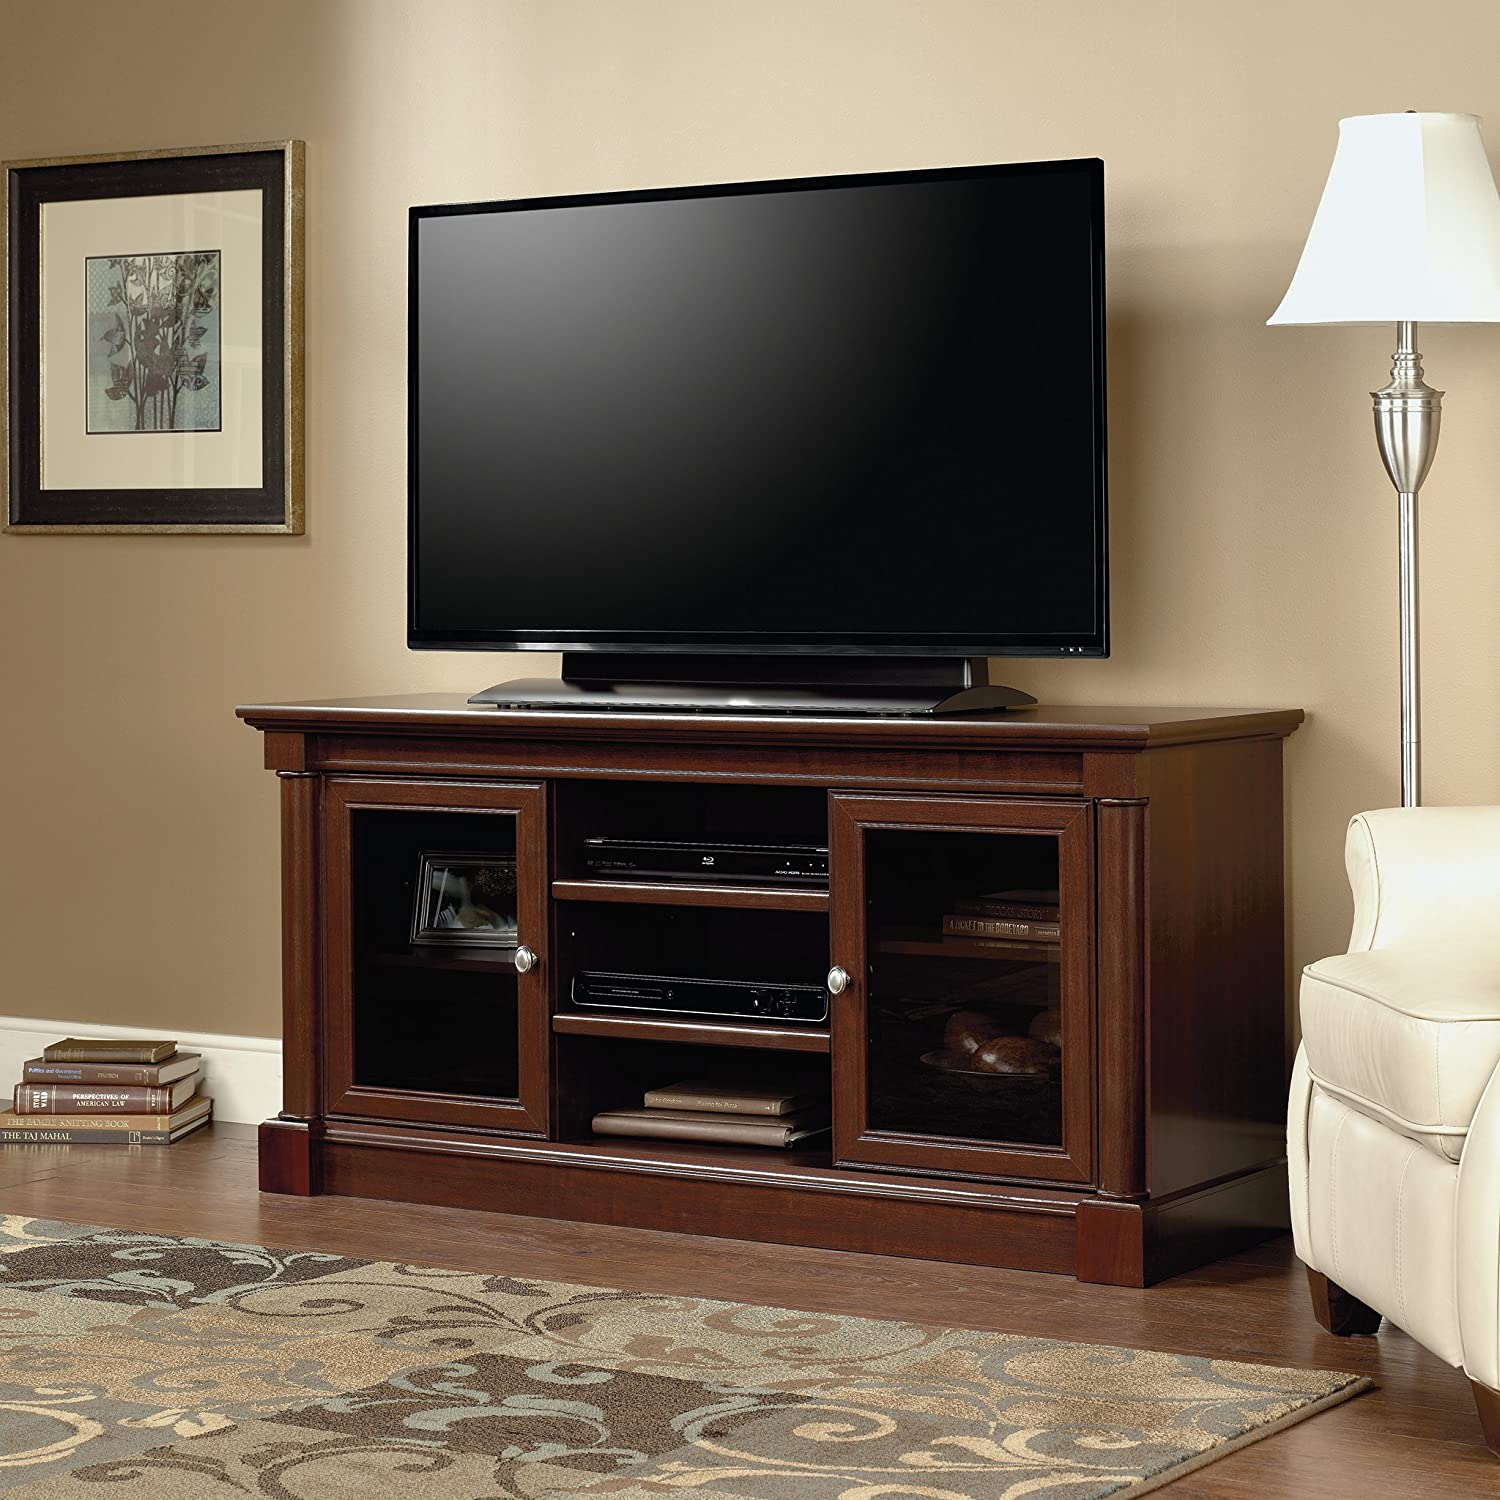 Sauder 411865 Palladia Entertainment Credenza, For TVs up to 60 , Select Cherry finish